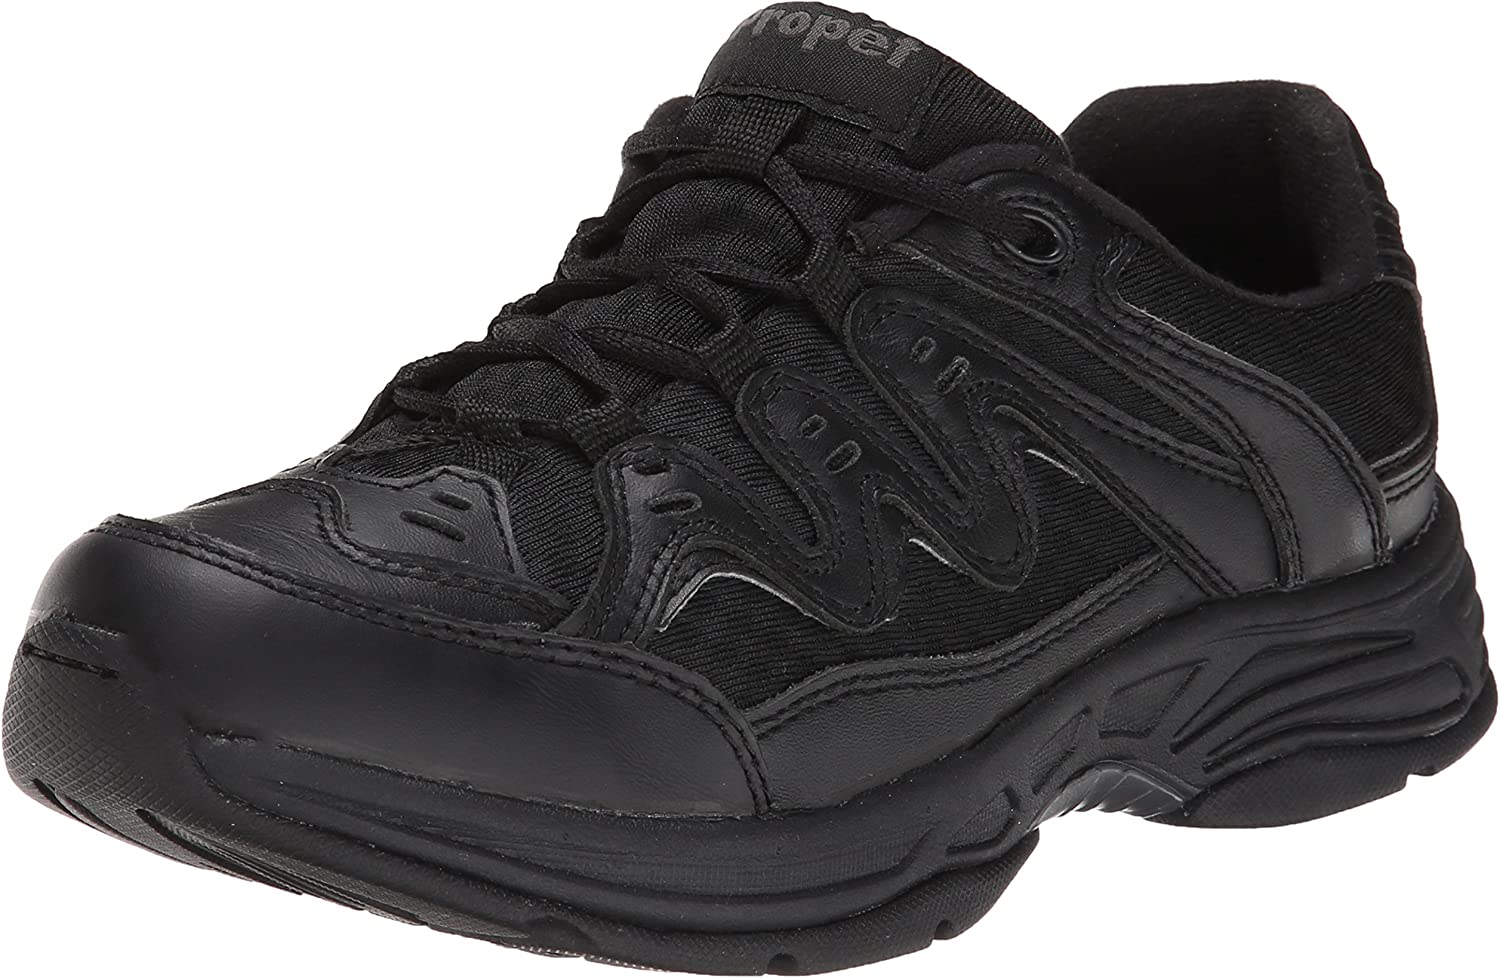 Propet Women's Evie Walking shoes